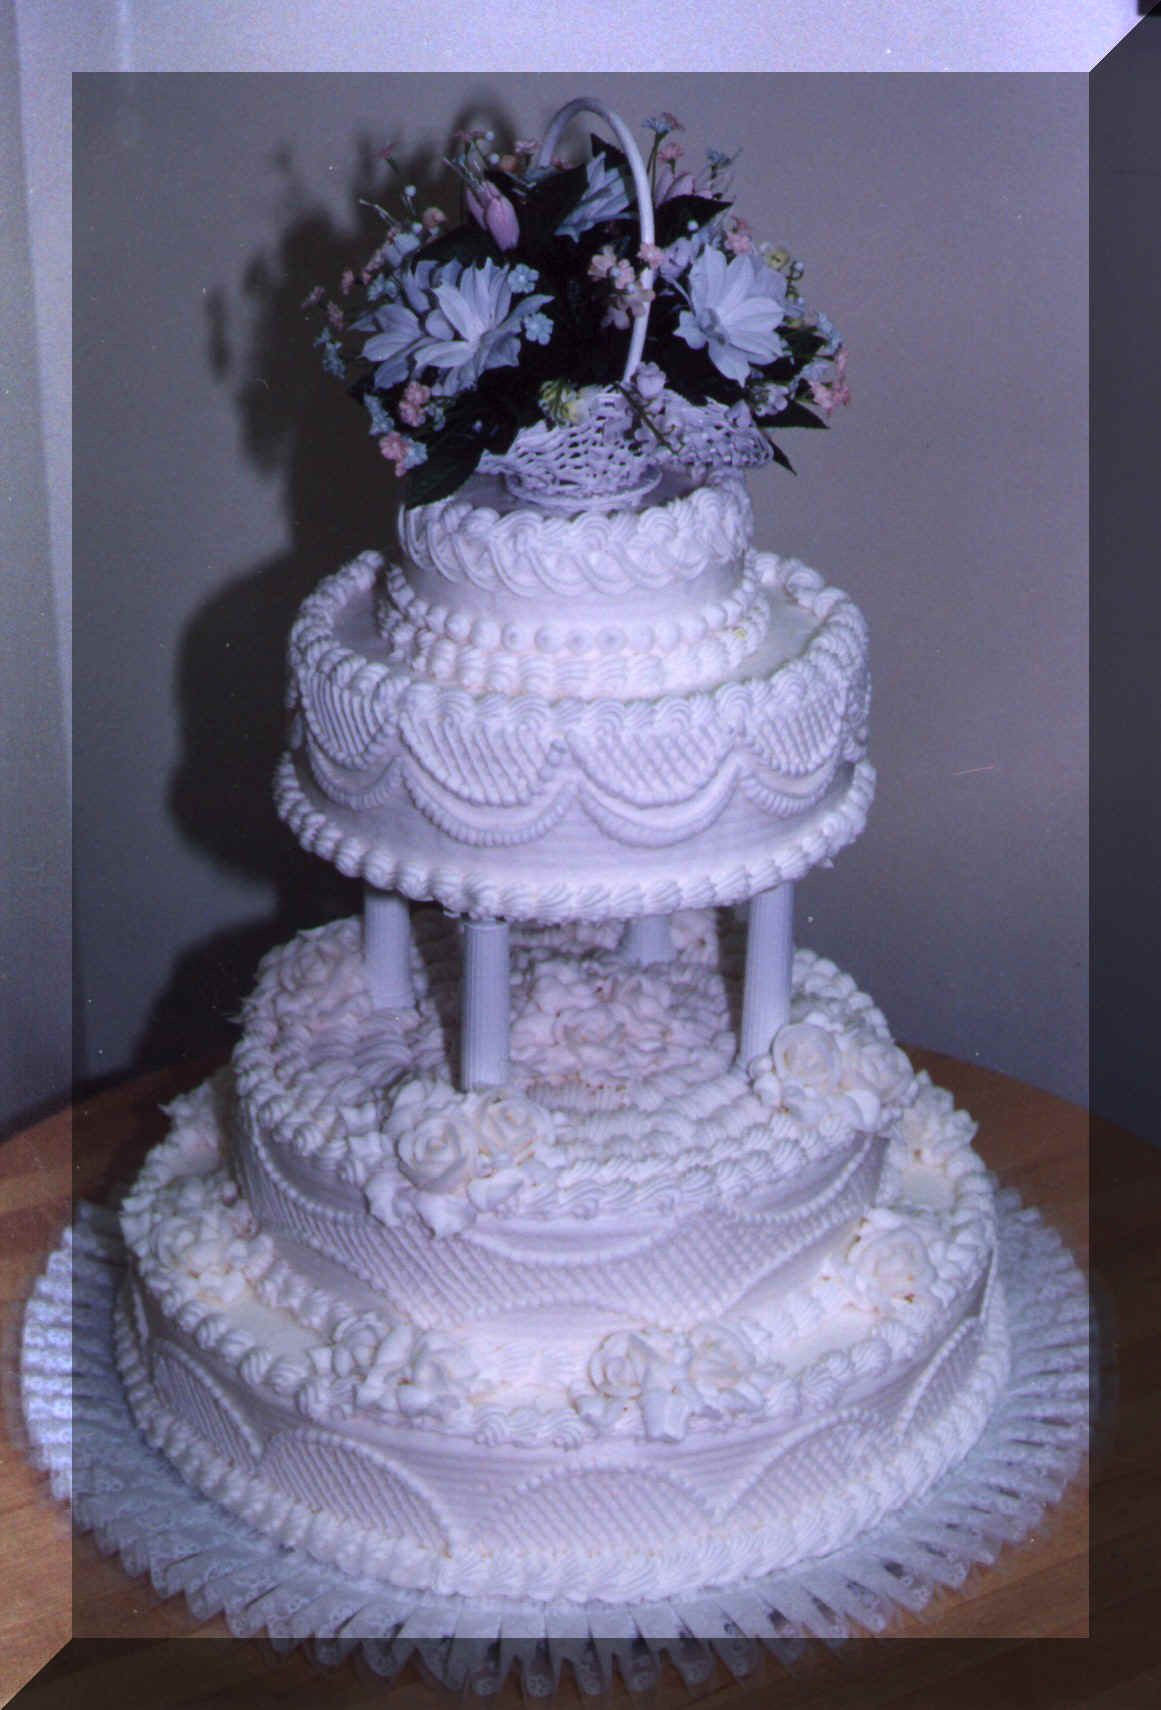 Walmart Bakery Wedding Cakes Price  Walmart Wedding Cakes Prices